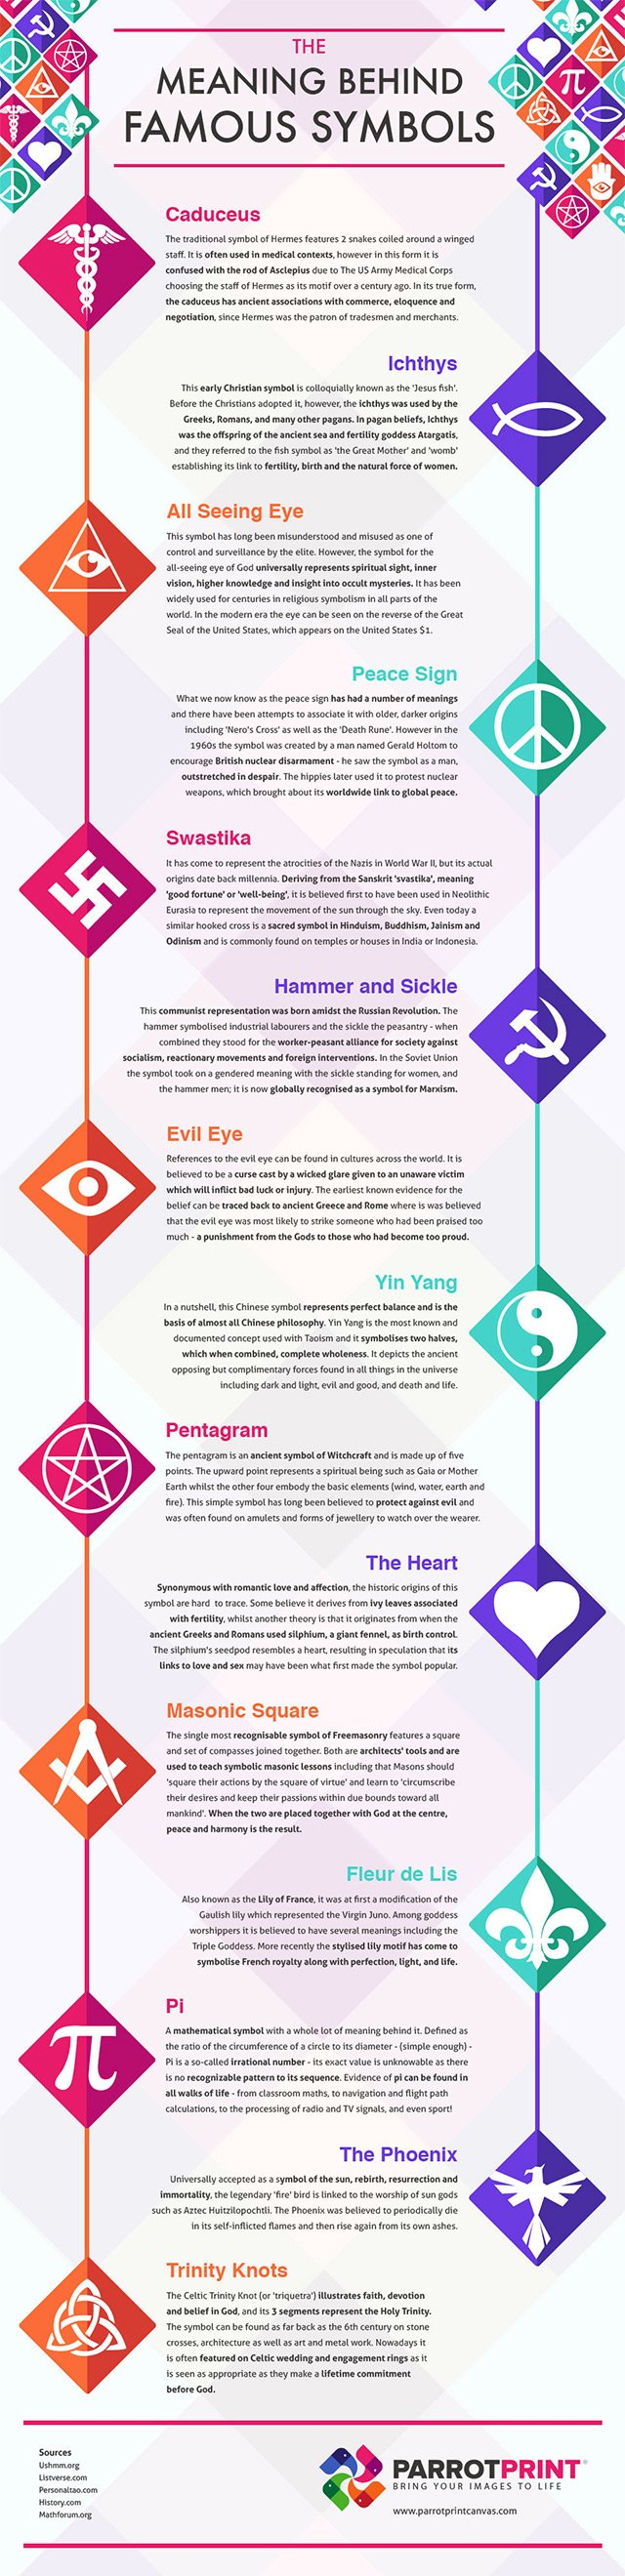 Famous Symbols and Icon Meanings